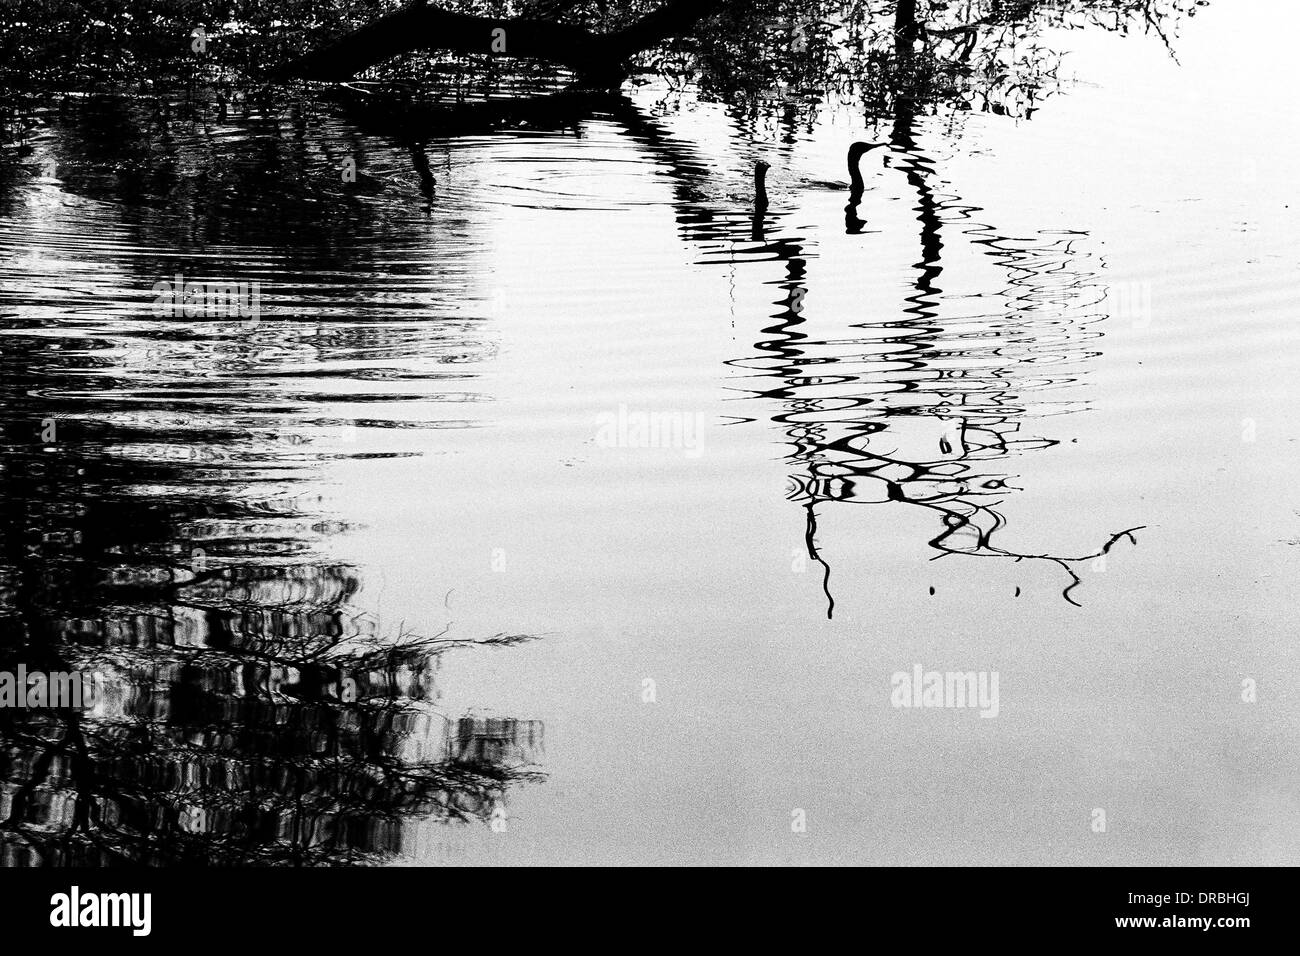 Darter birds swimming and reflection, Bharatpur Bird Sanctuary, Rajasthan, India, 1976 - Stock Image